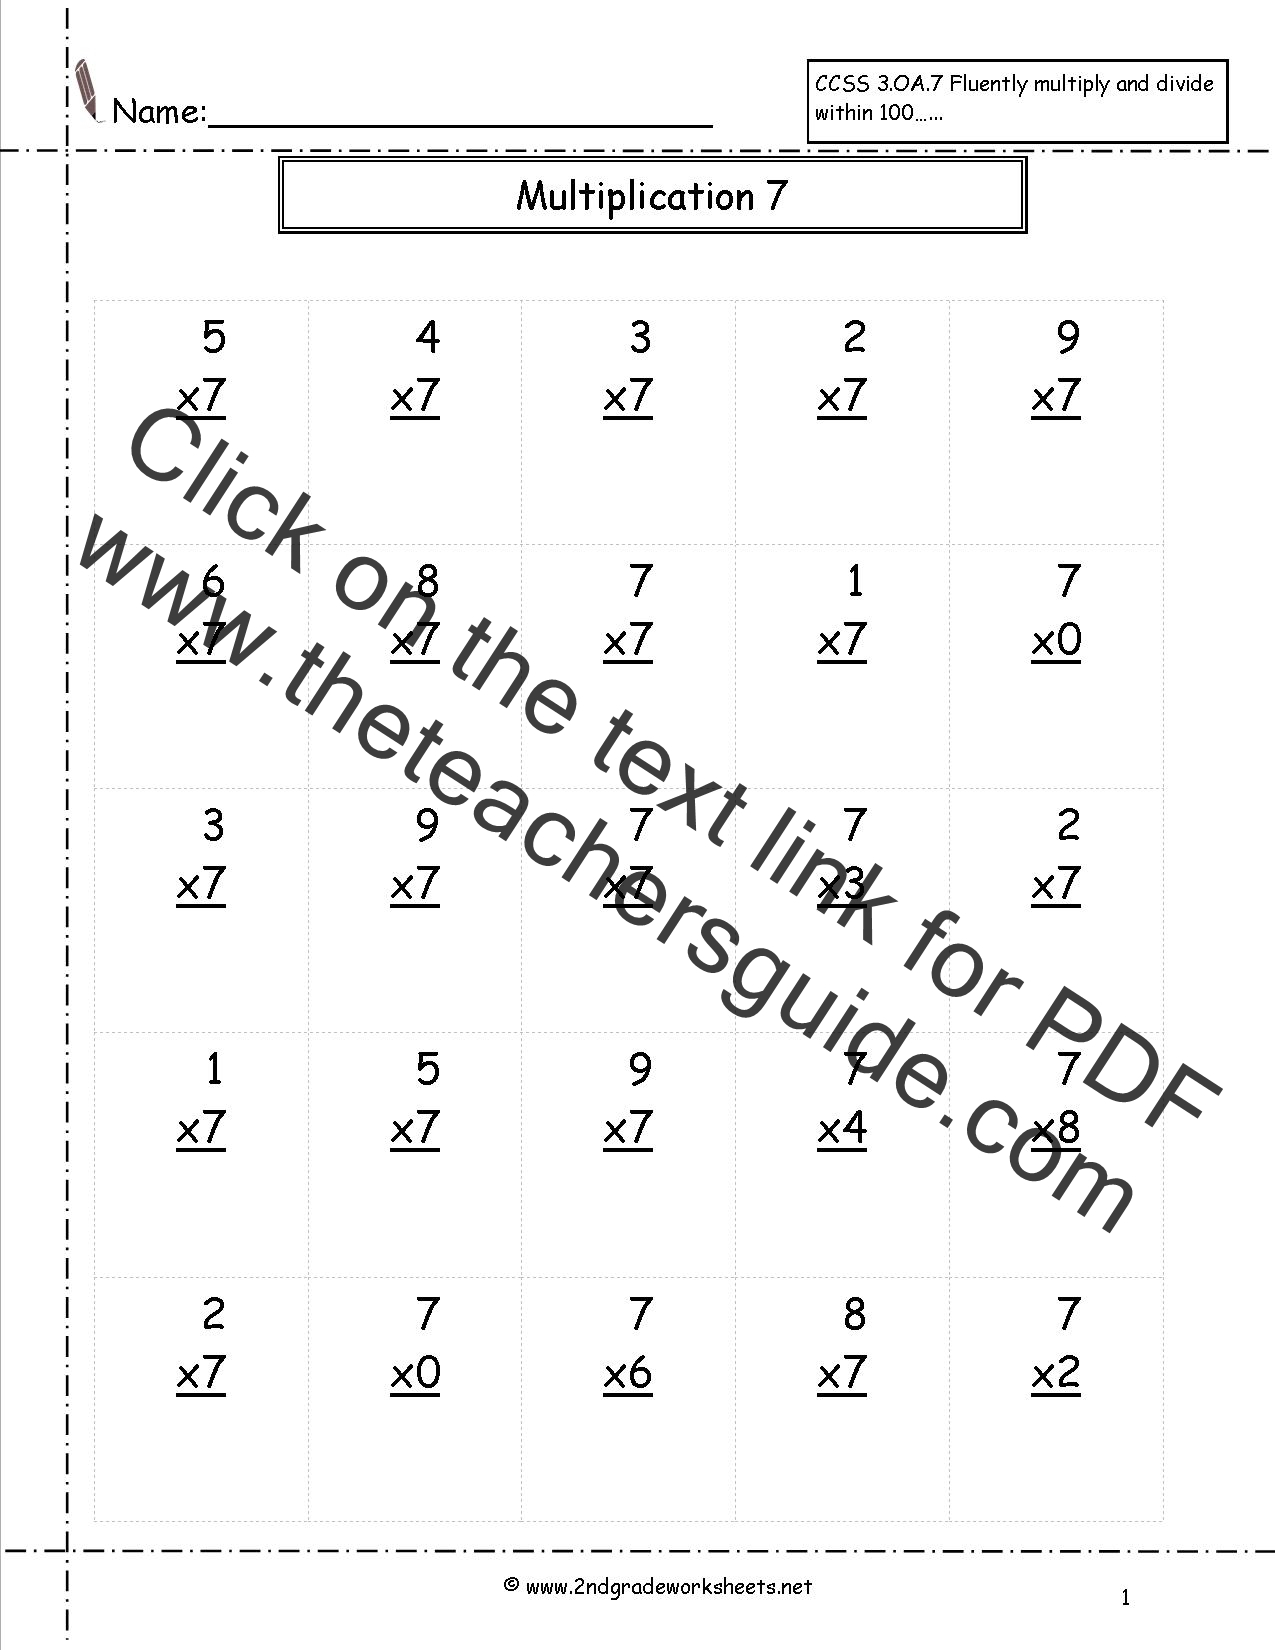 hight resolution of Egyptian Multiplication Method Worksheets   Printable Worksheets and  Activities for Teachers